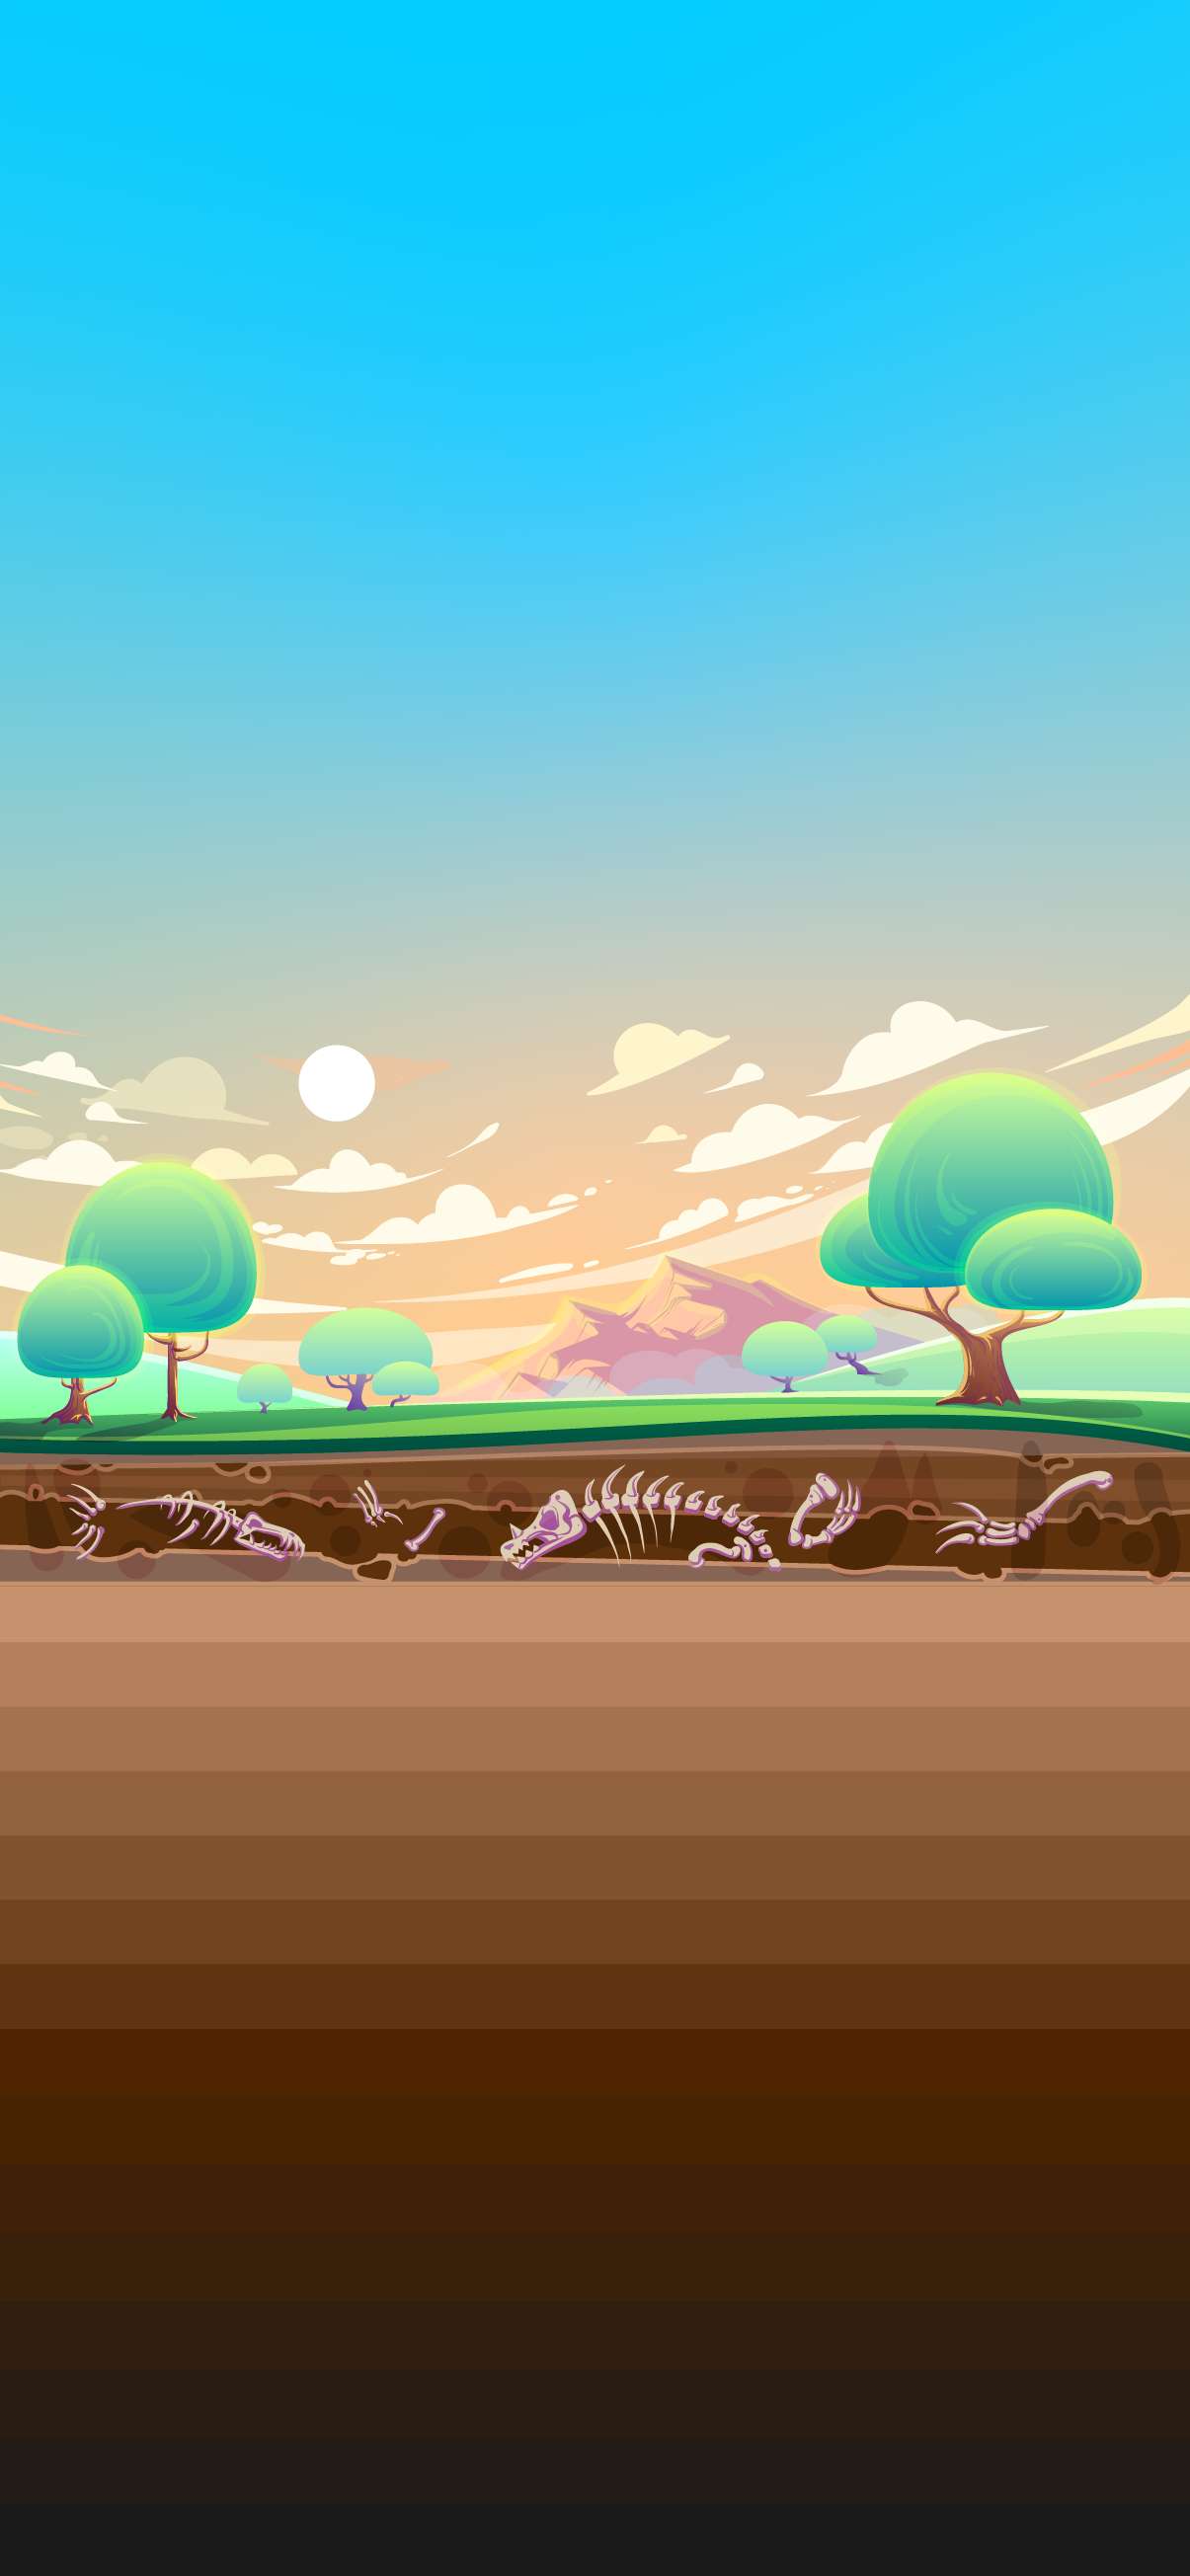 Valley and cross section of soil with fossils Free wallpaper phone hd 4k